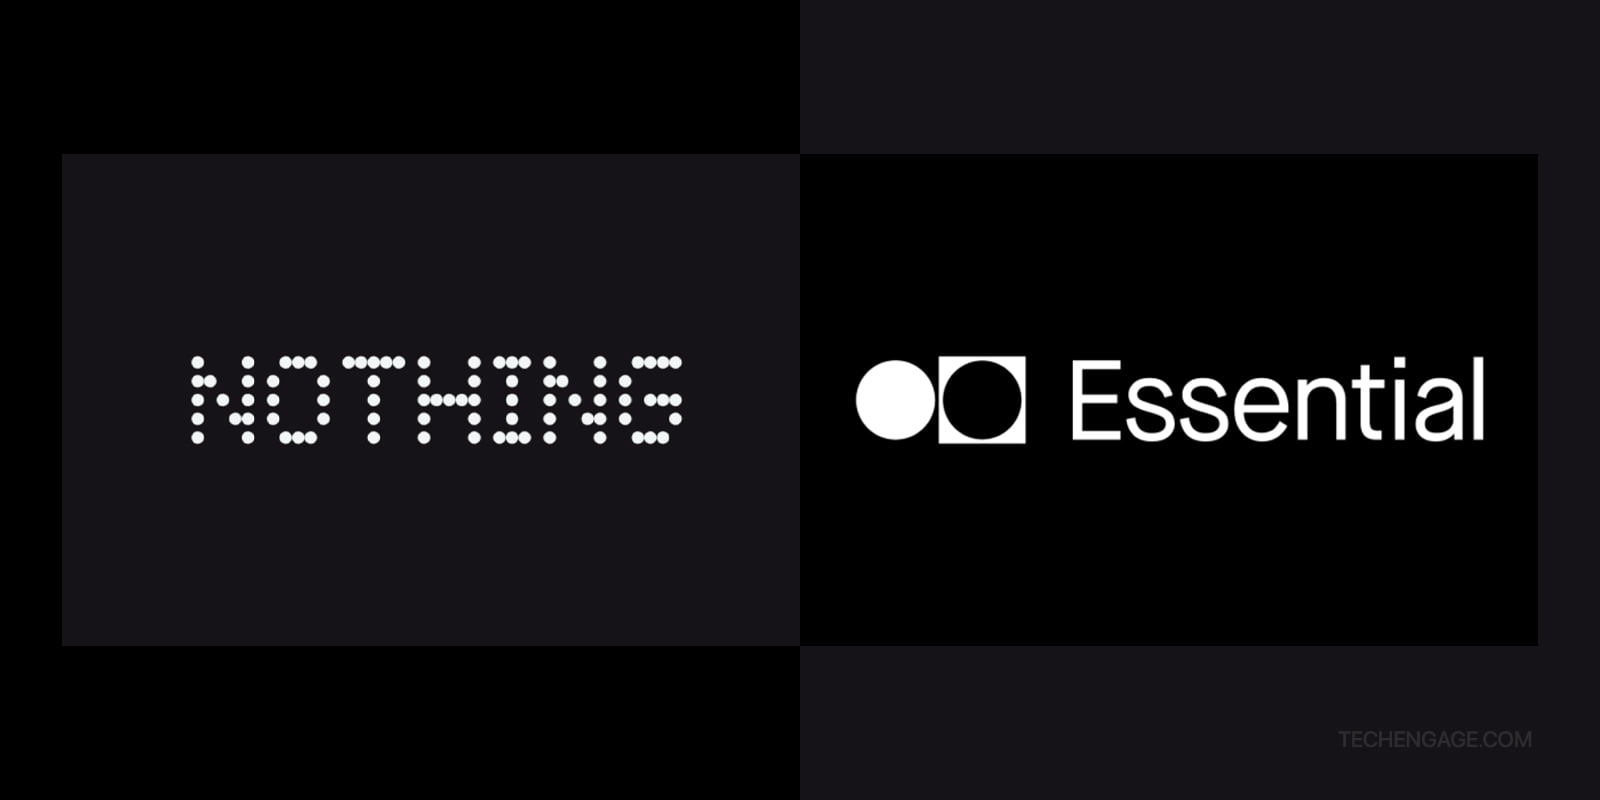 Carl Pei's Nothing acquires Andy Rubin's Essential